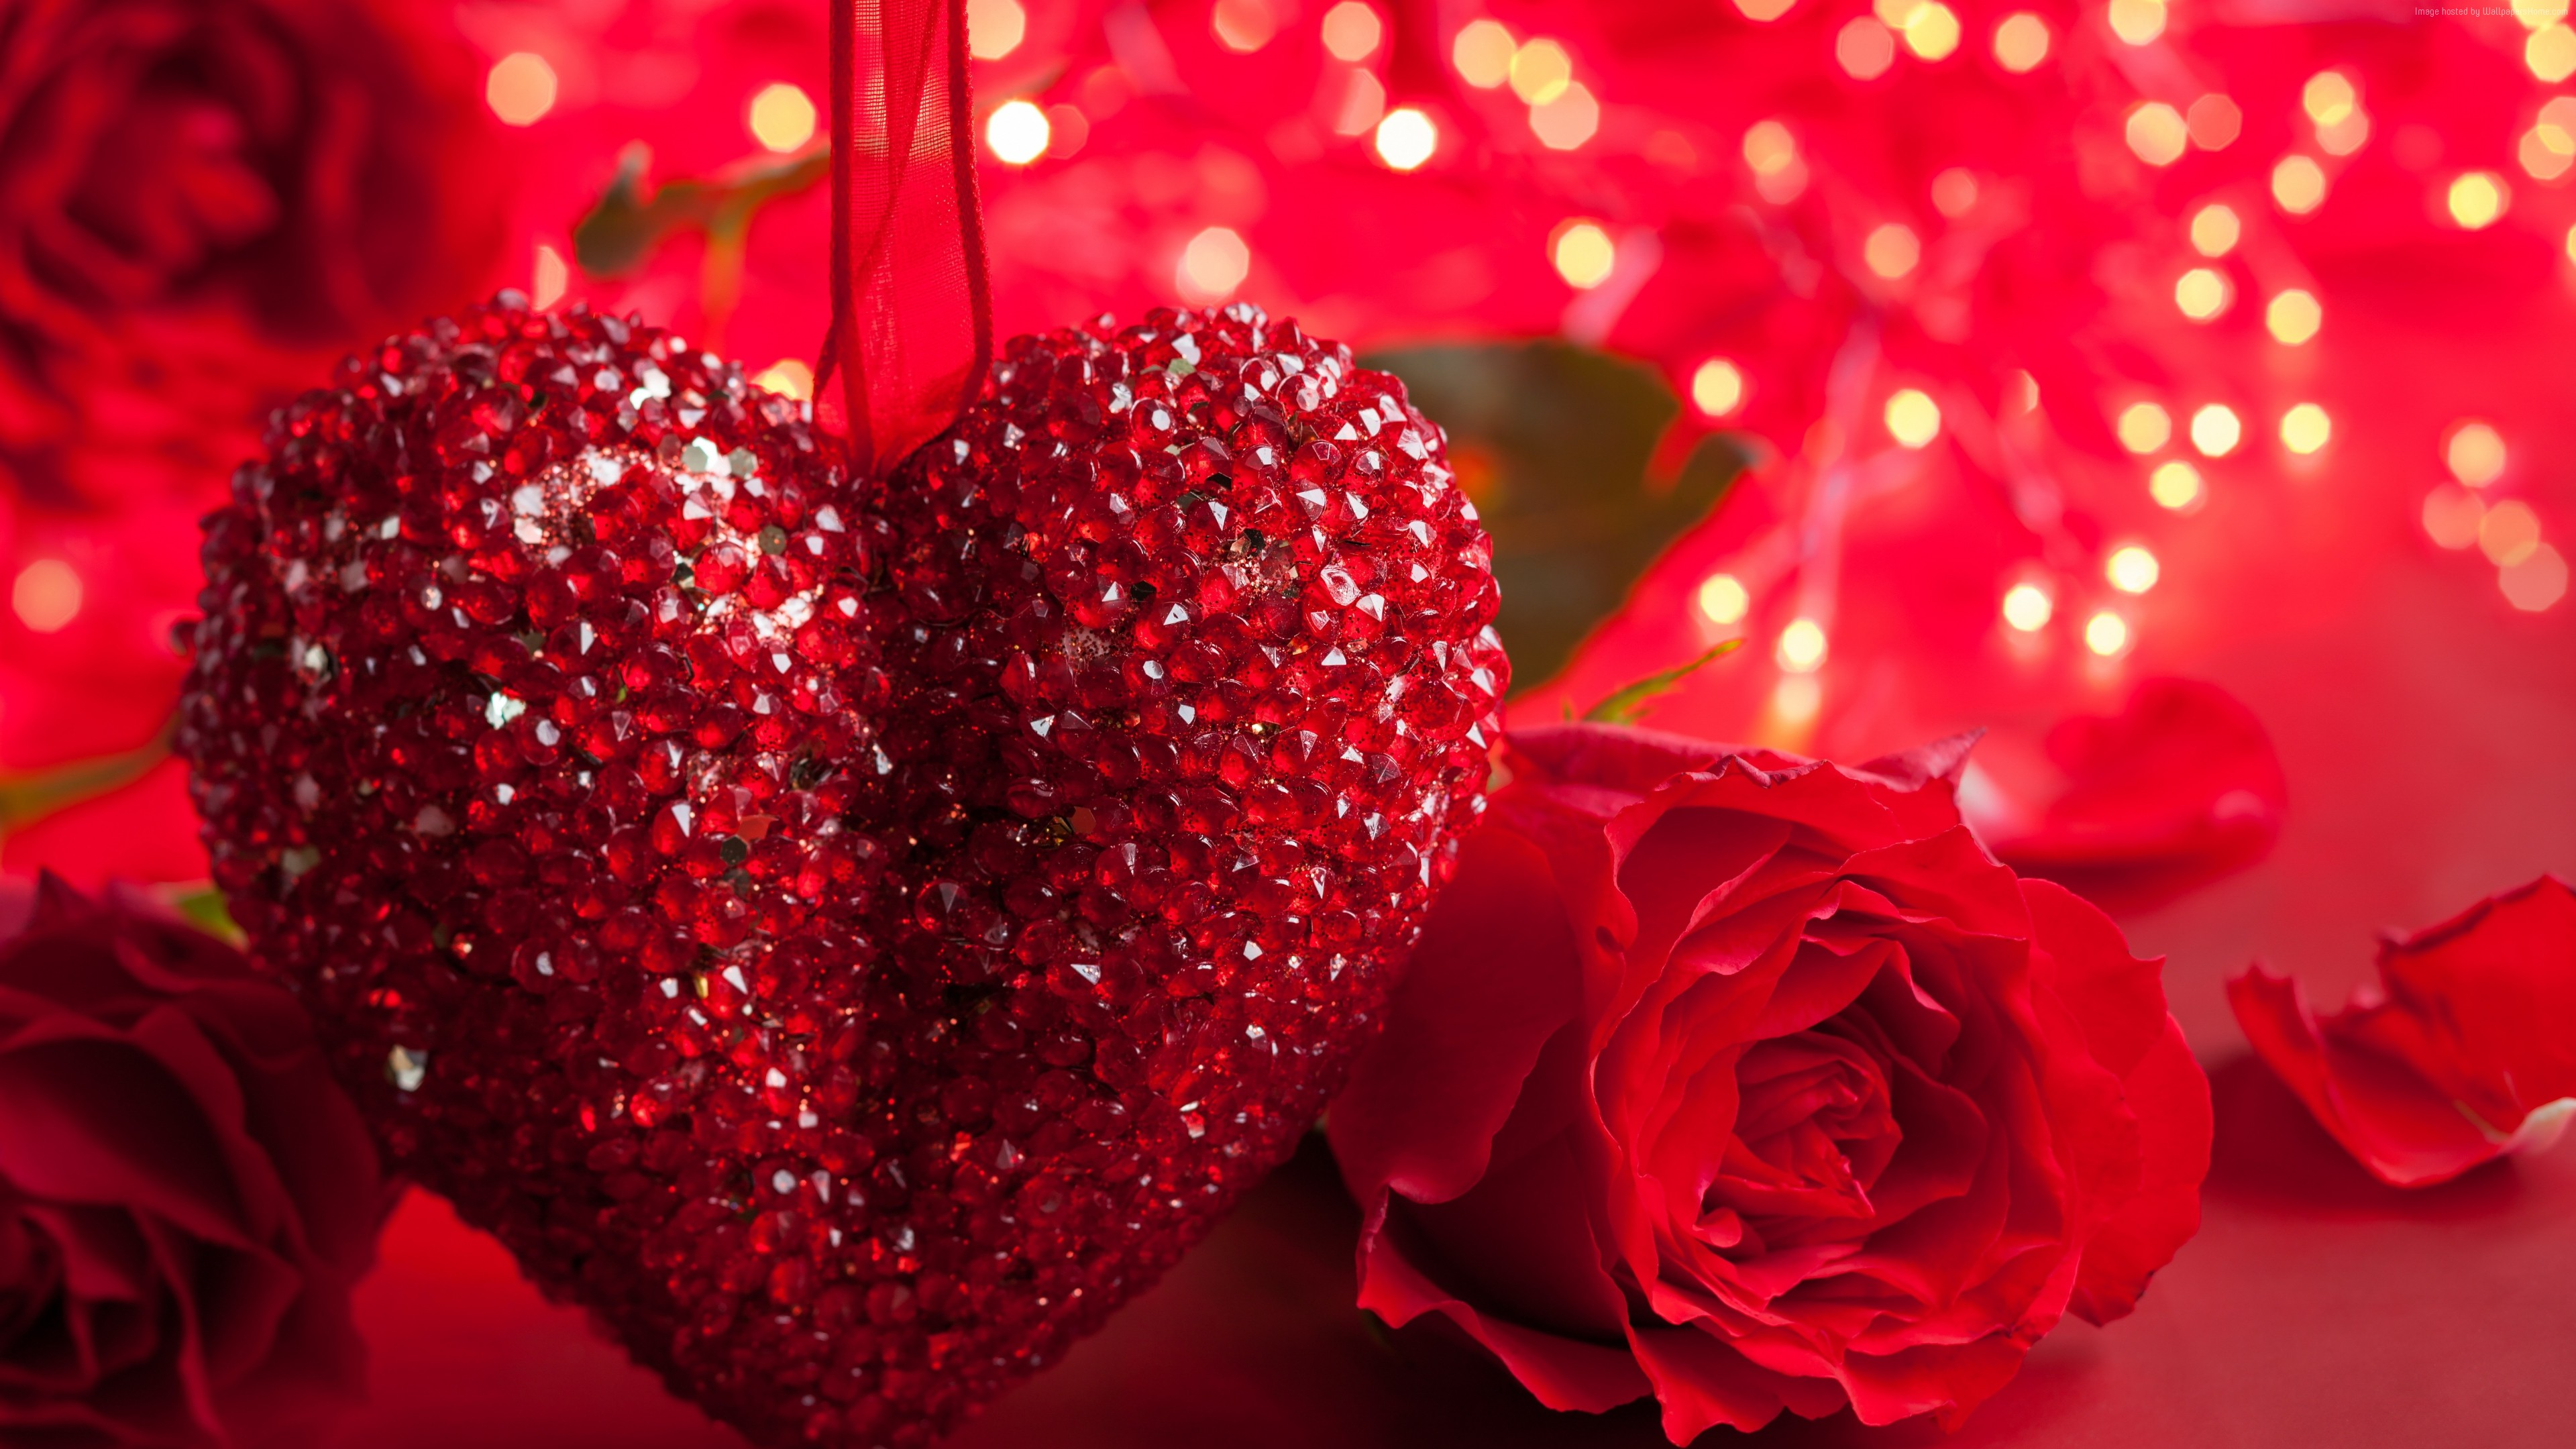 Cute Love Cartoon Wallpaper Hd Beautiful Big Red Neckless Heart Love And Red Roses